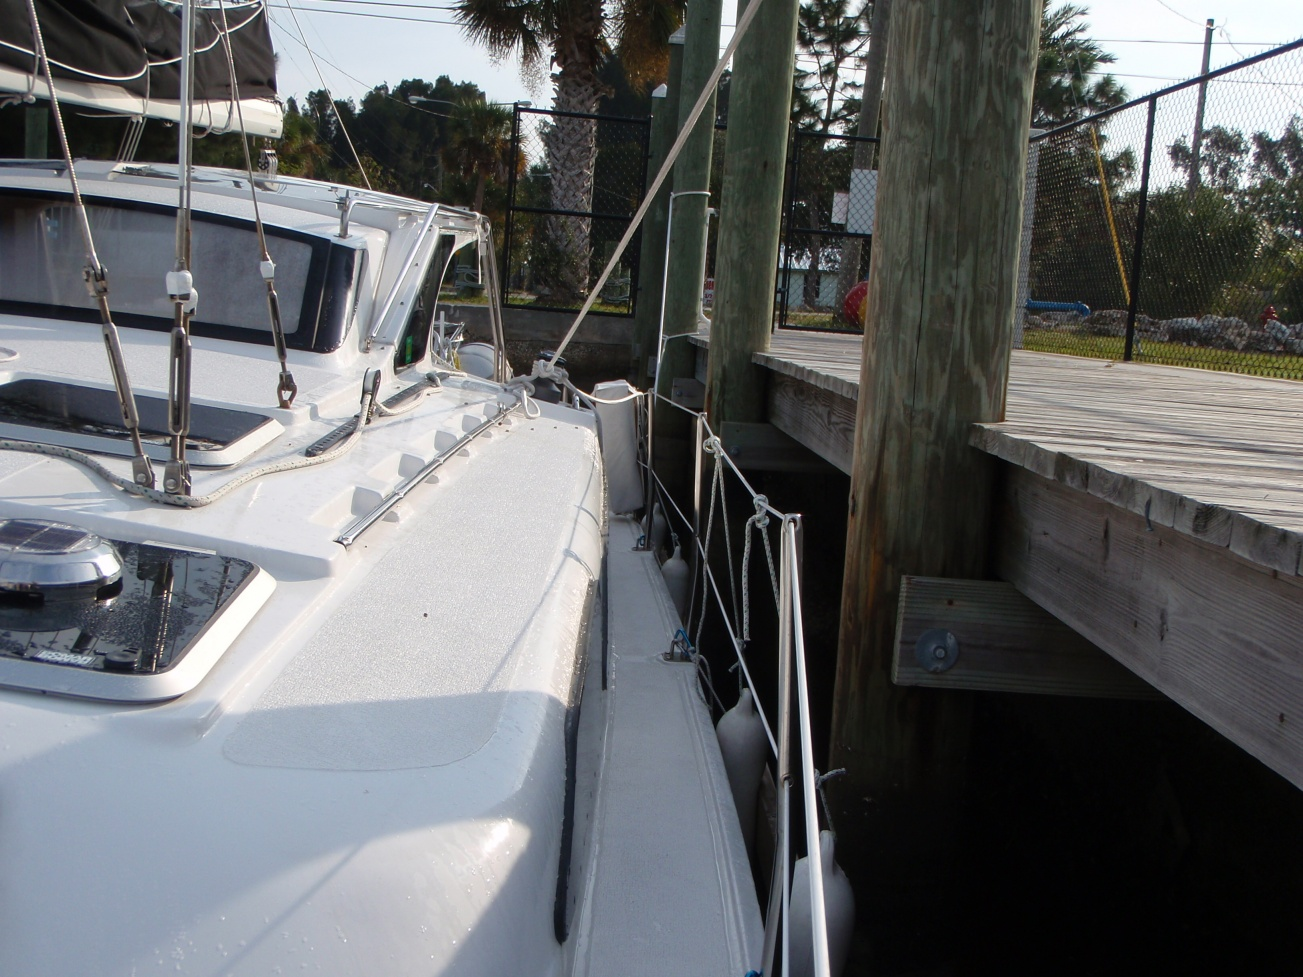 Click image for larger version  Name:Dock at low tide05.jpg.jpg Views:121 Size:425.2 KB ID:29308